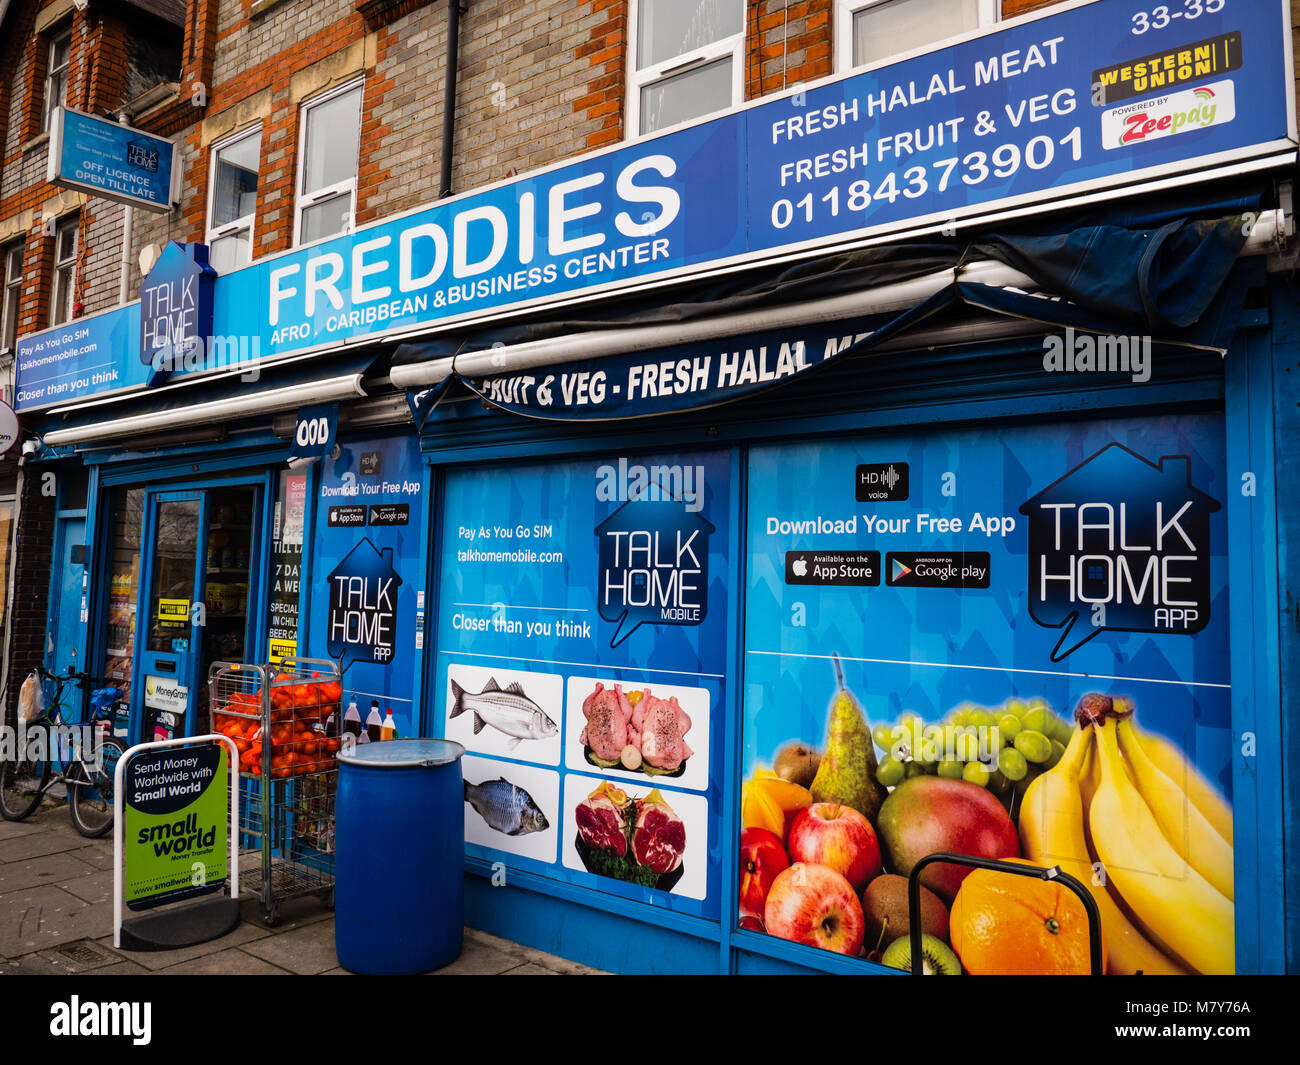 Freddies Afro Caribbean Store, Halal Off License, Whitley, Reading, England. - Stock Image